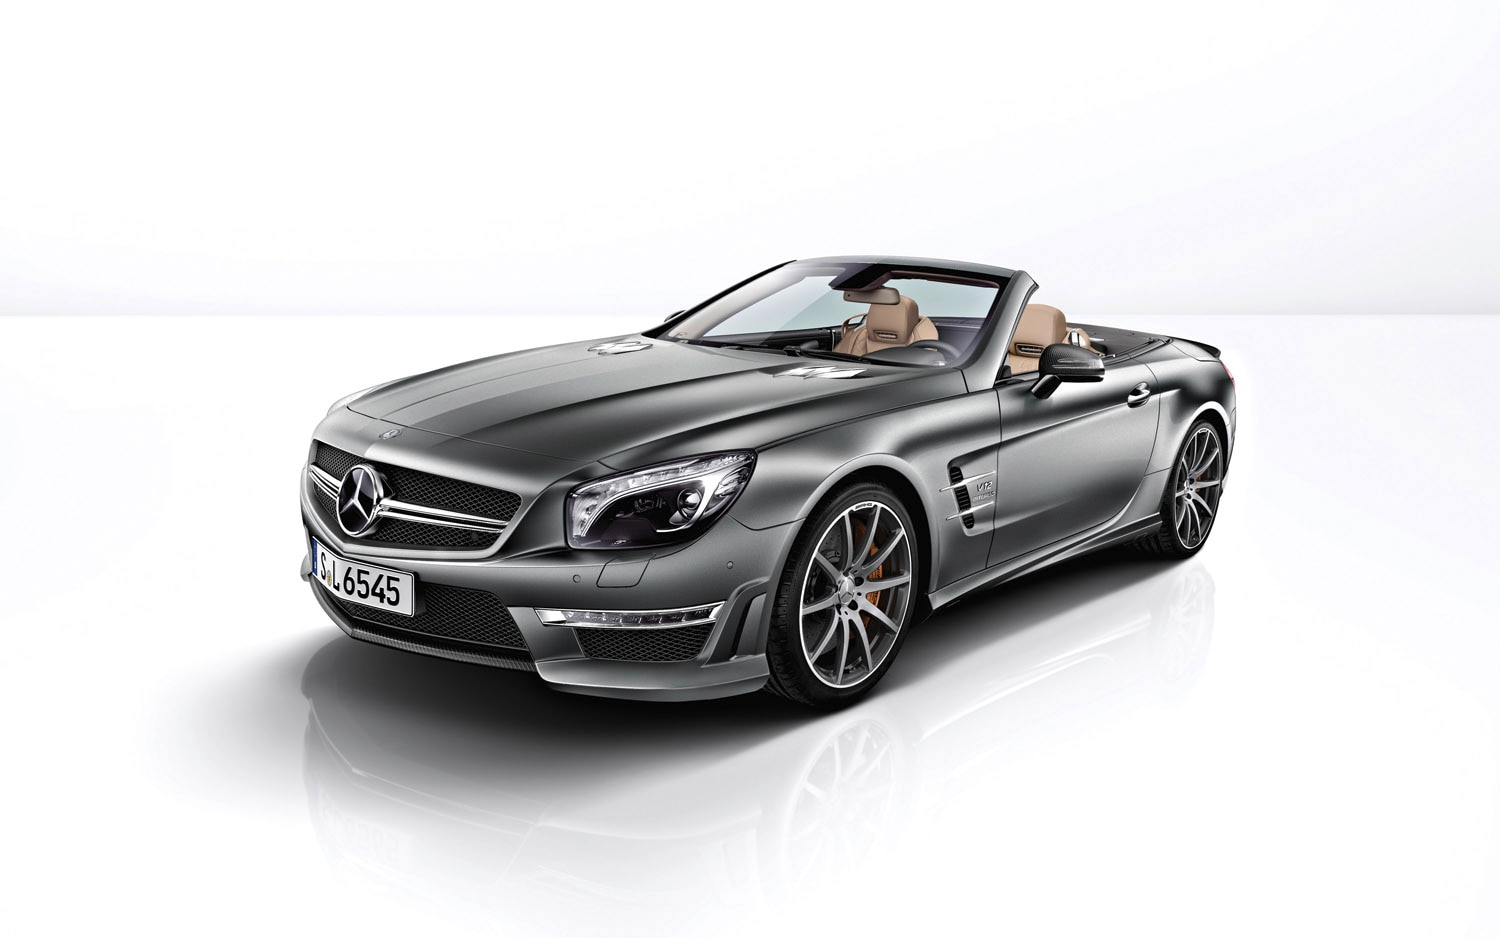 2012 Mercedes Benz SL65 AMG Front Three Quarter1